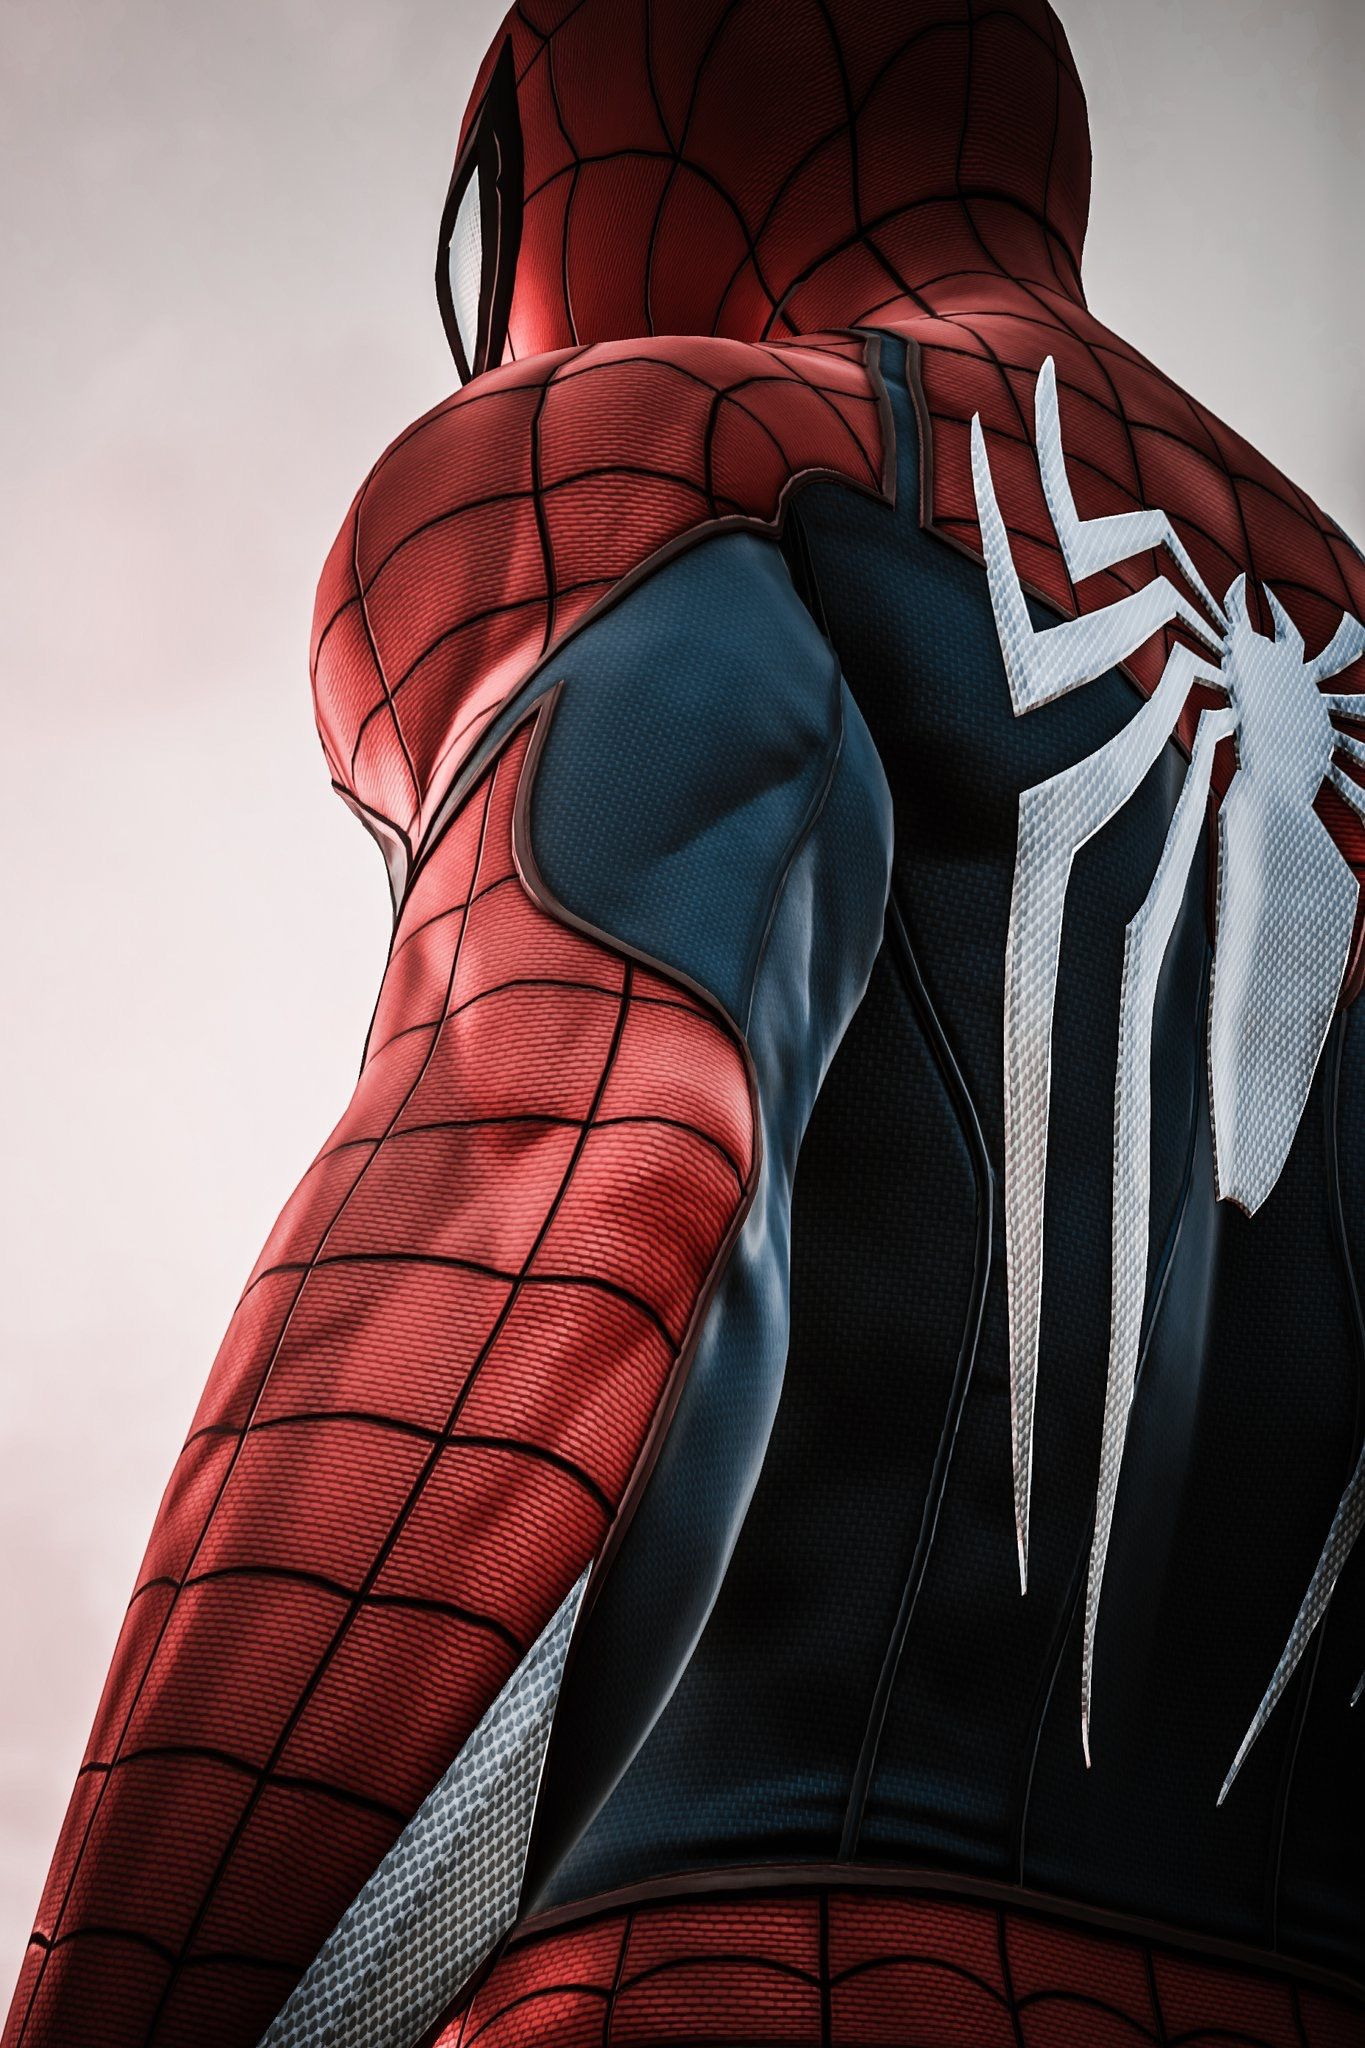 Spider Man Awesome Suit I Think This Suit Is From The Amazing Spider Man 2012 When Andrew Garfield As Peter Park Heros Marvel Spiderman Ps4 Personnages Marvel